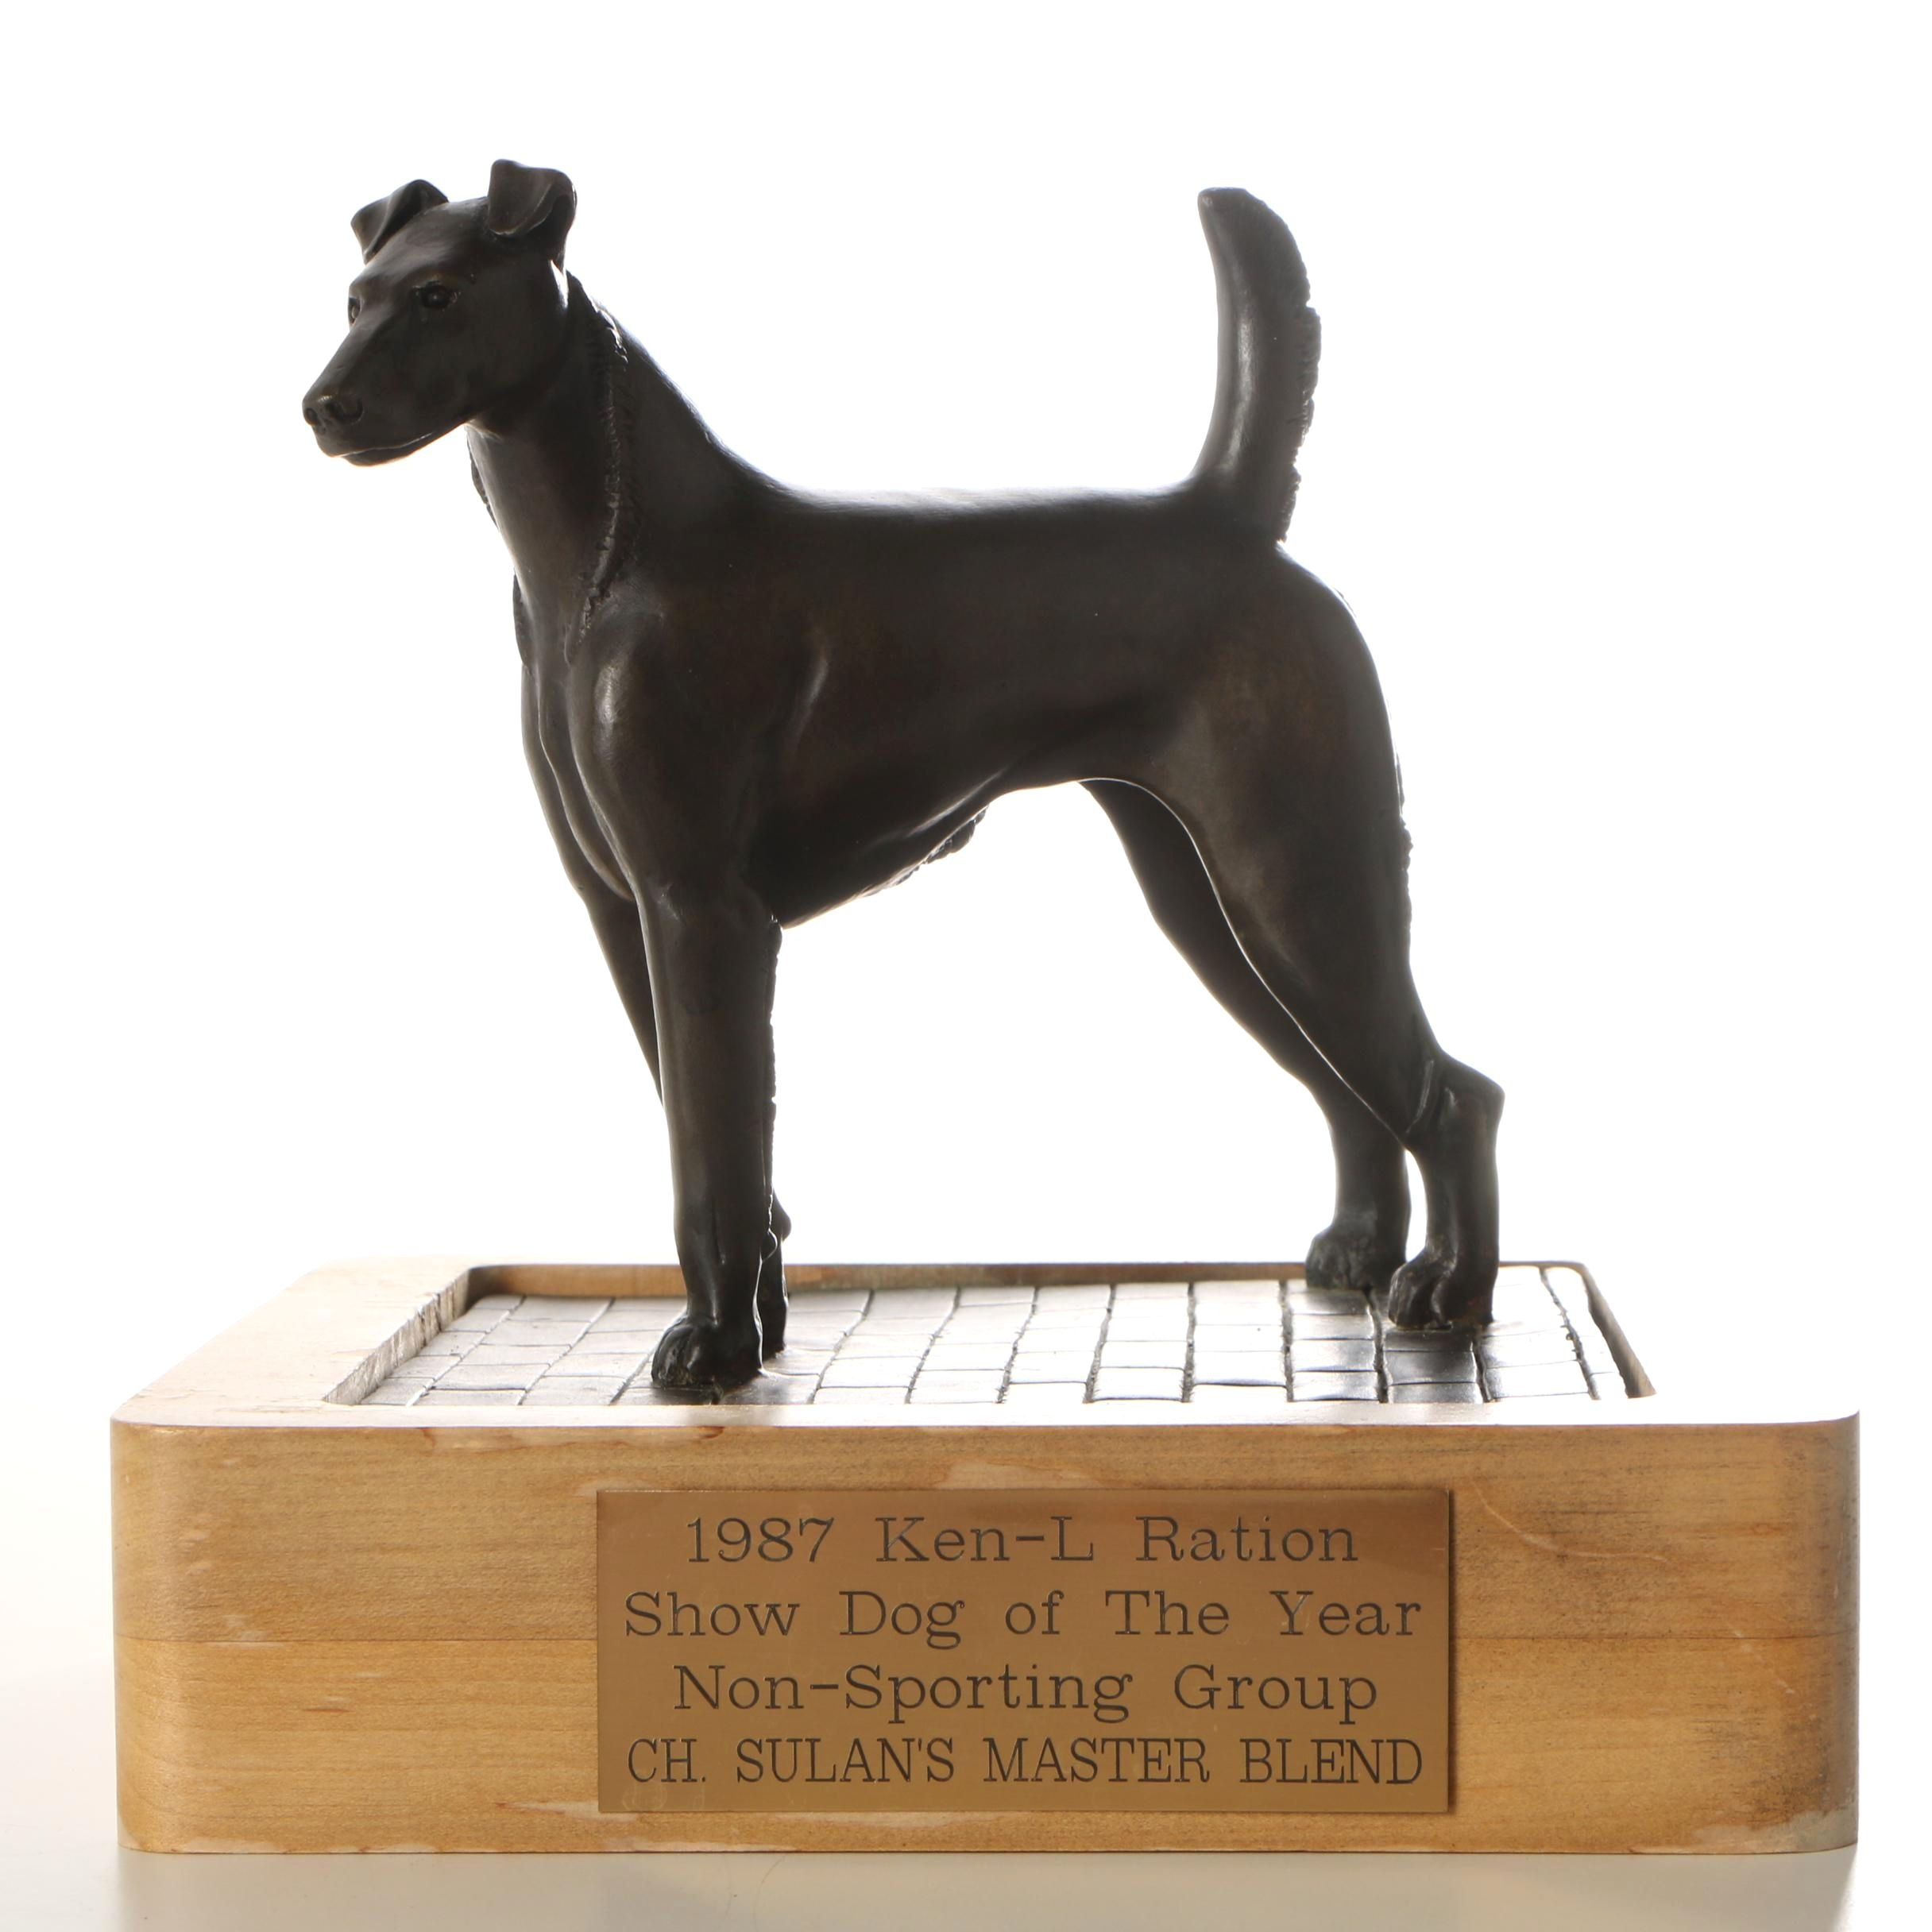 Ric Chashoudian Bronze Trophy for the 1987 Ken-L Ration Dog Show